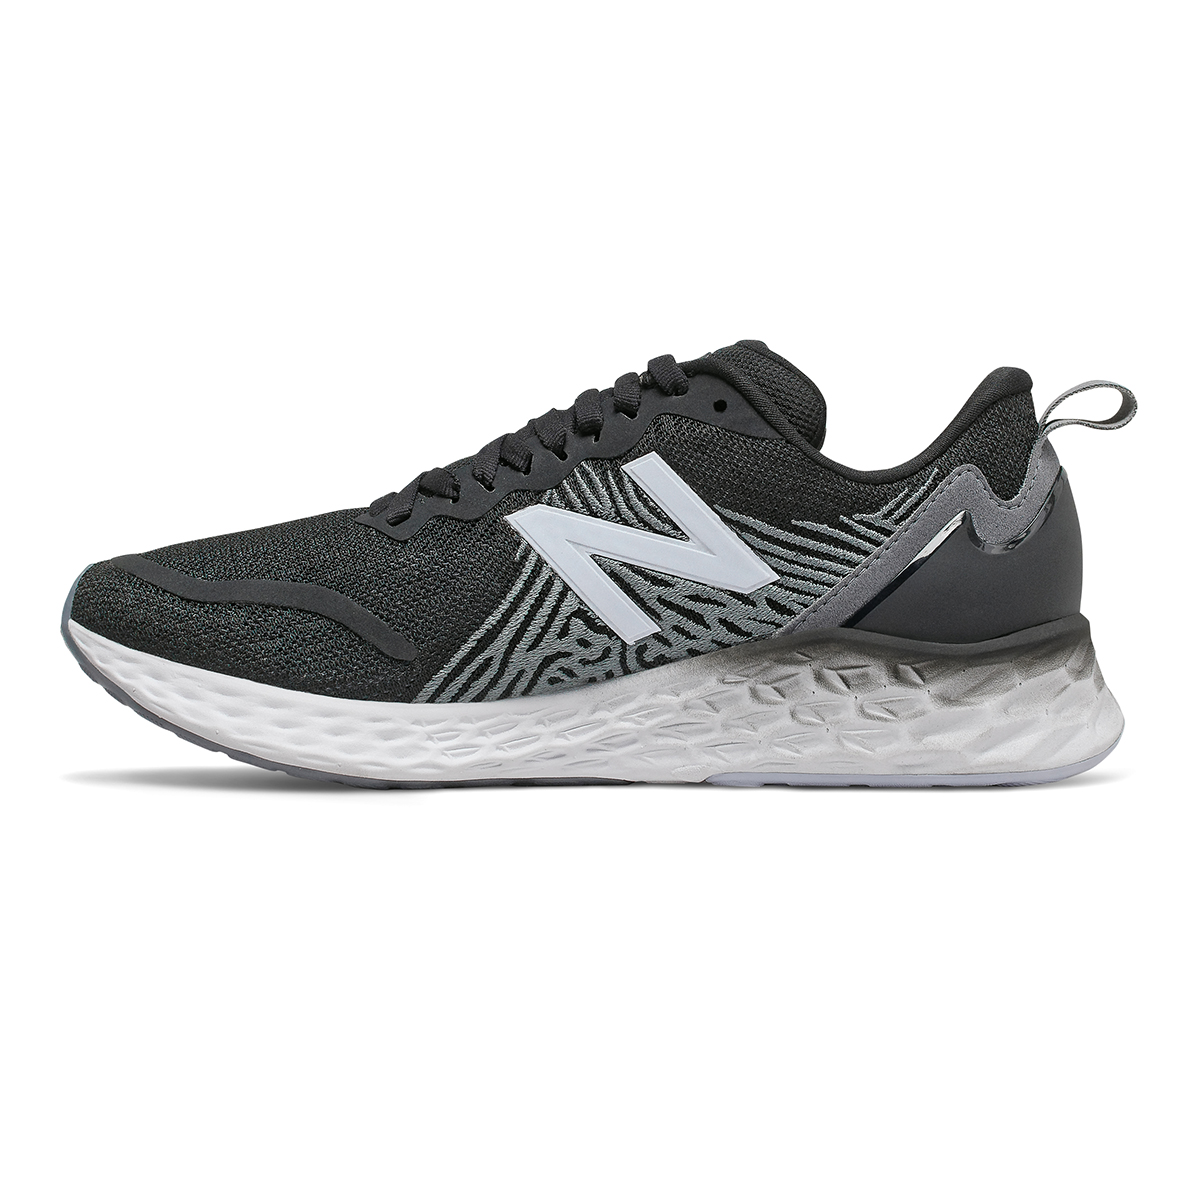 Women's New Balance Tempo Running Shoe - Color: Black - Size: 5 - Width: Regular, Black, large, image 2